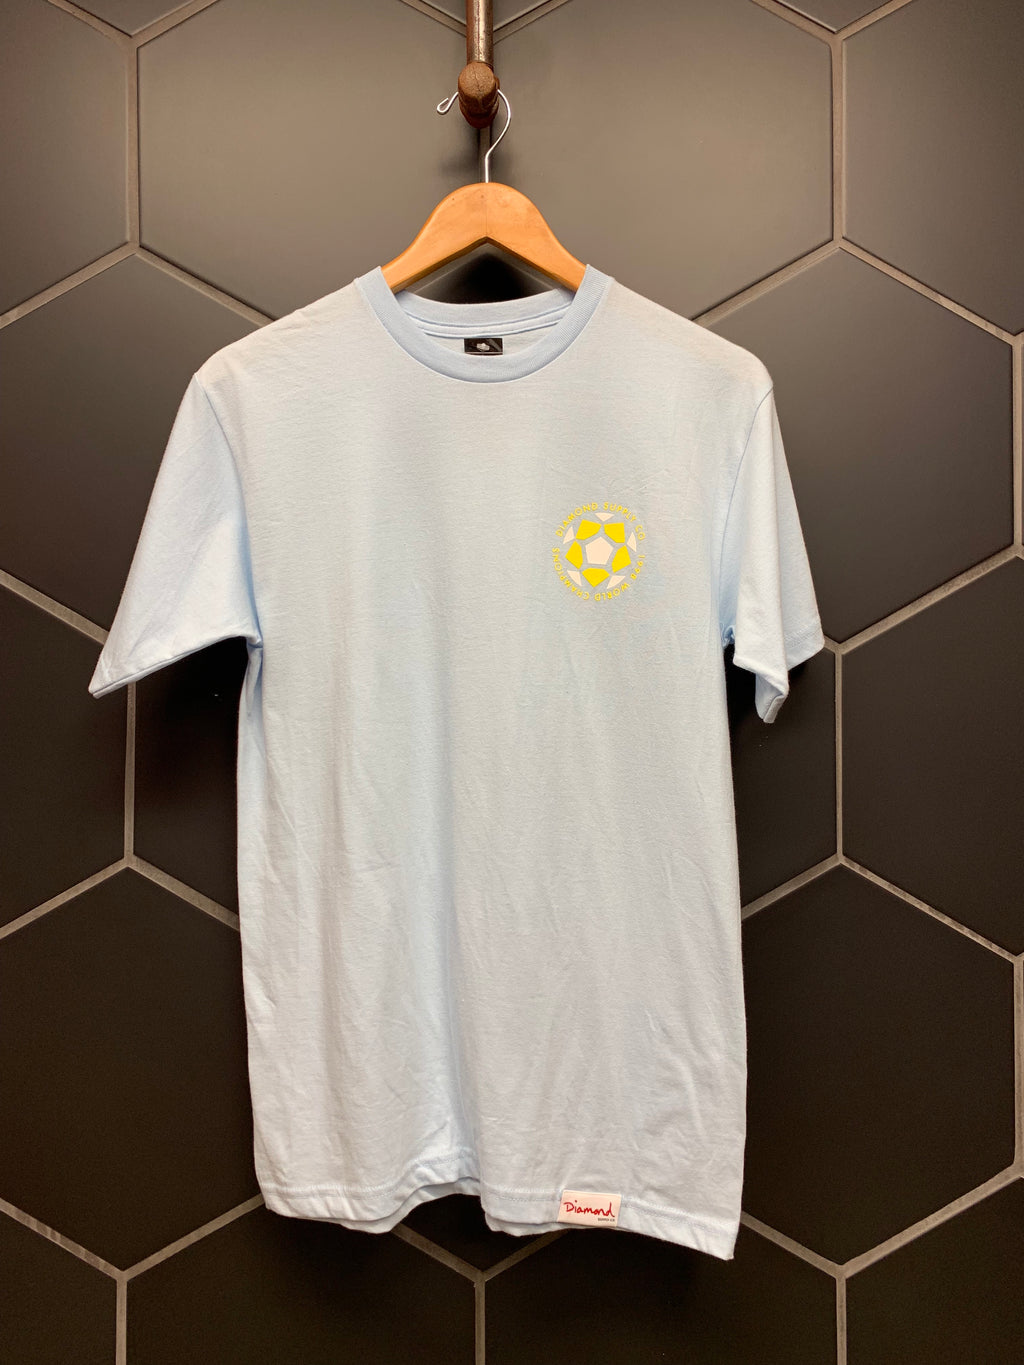 New! Diamond Supply Co Light Blue World Championship S/S T-Shirt (Multiple Sizes)